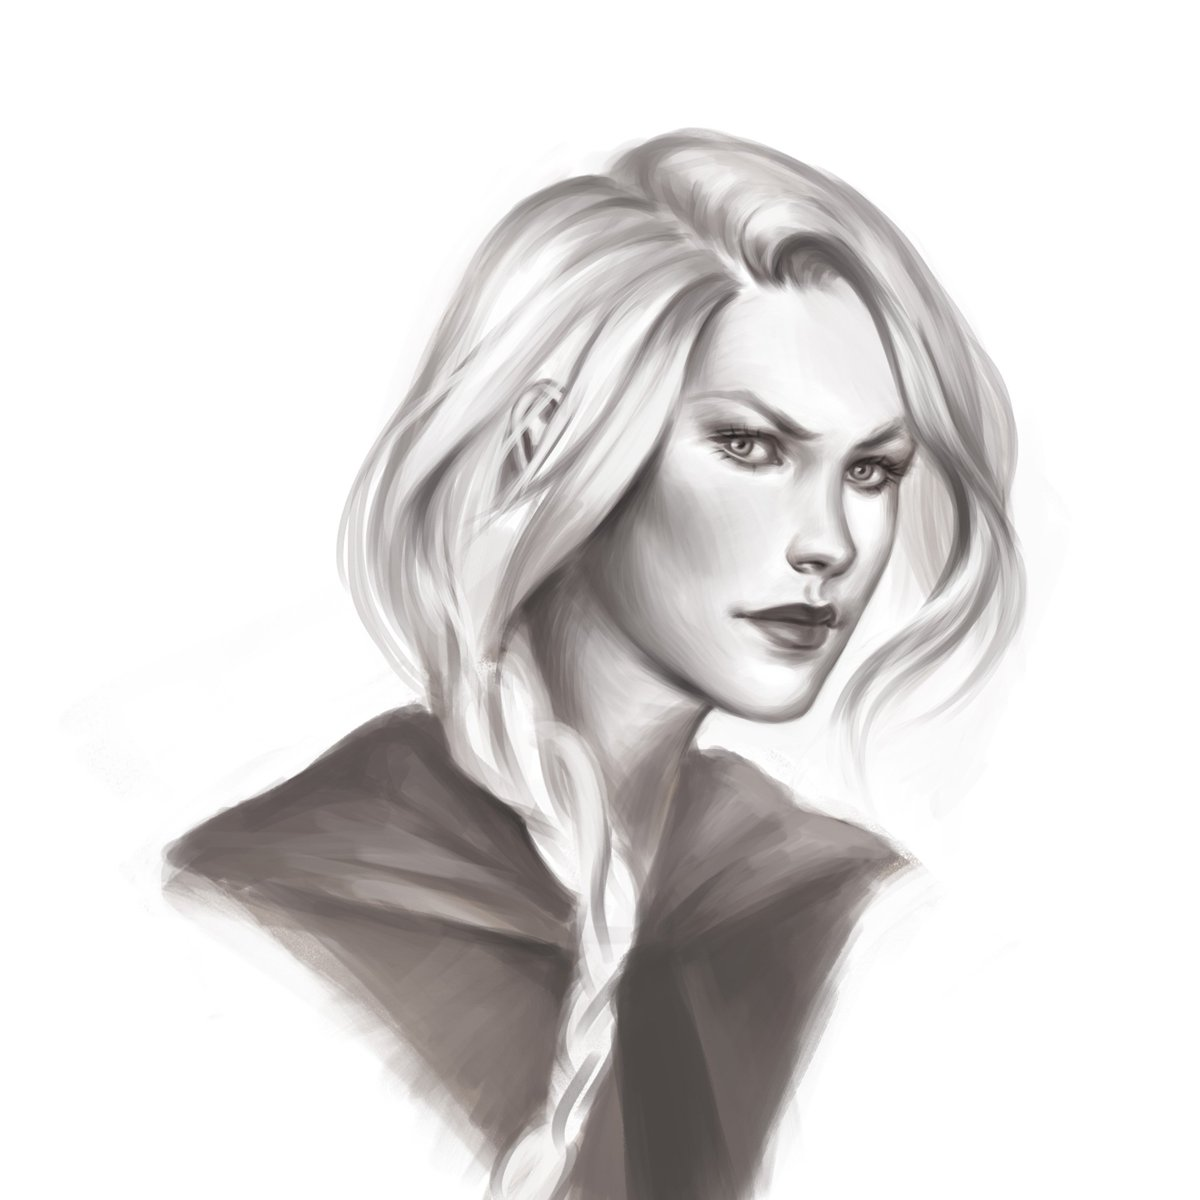 Painting Manon again  will add some color to it tomorrow   #manonblackbeak #throneofglass #sarahjmaas #digitalpainting #wip #drawing #myart<br>http://pic.twitter.com/x2Nb8FsTL5